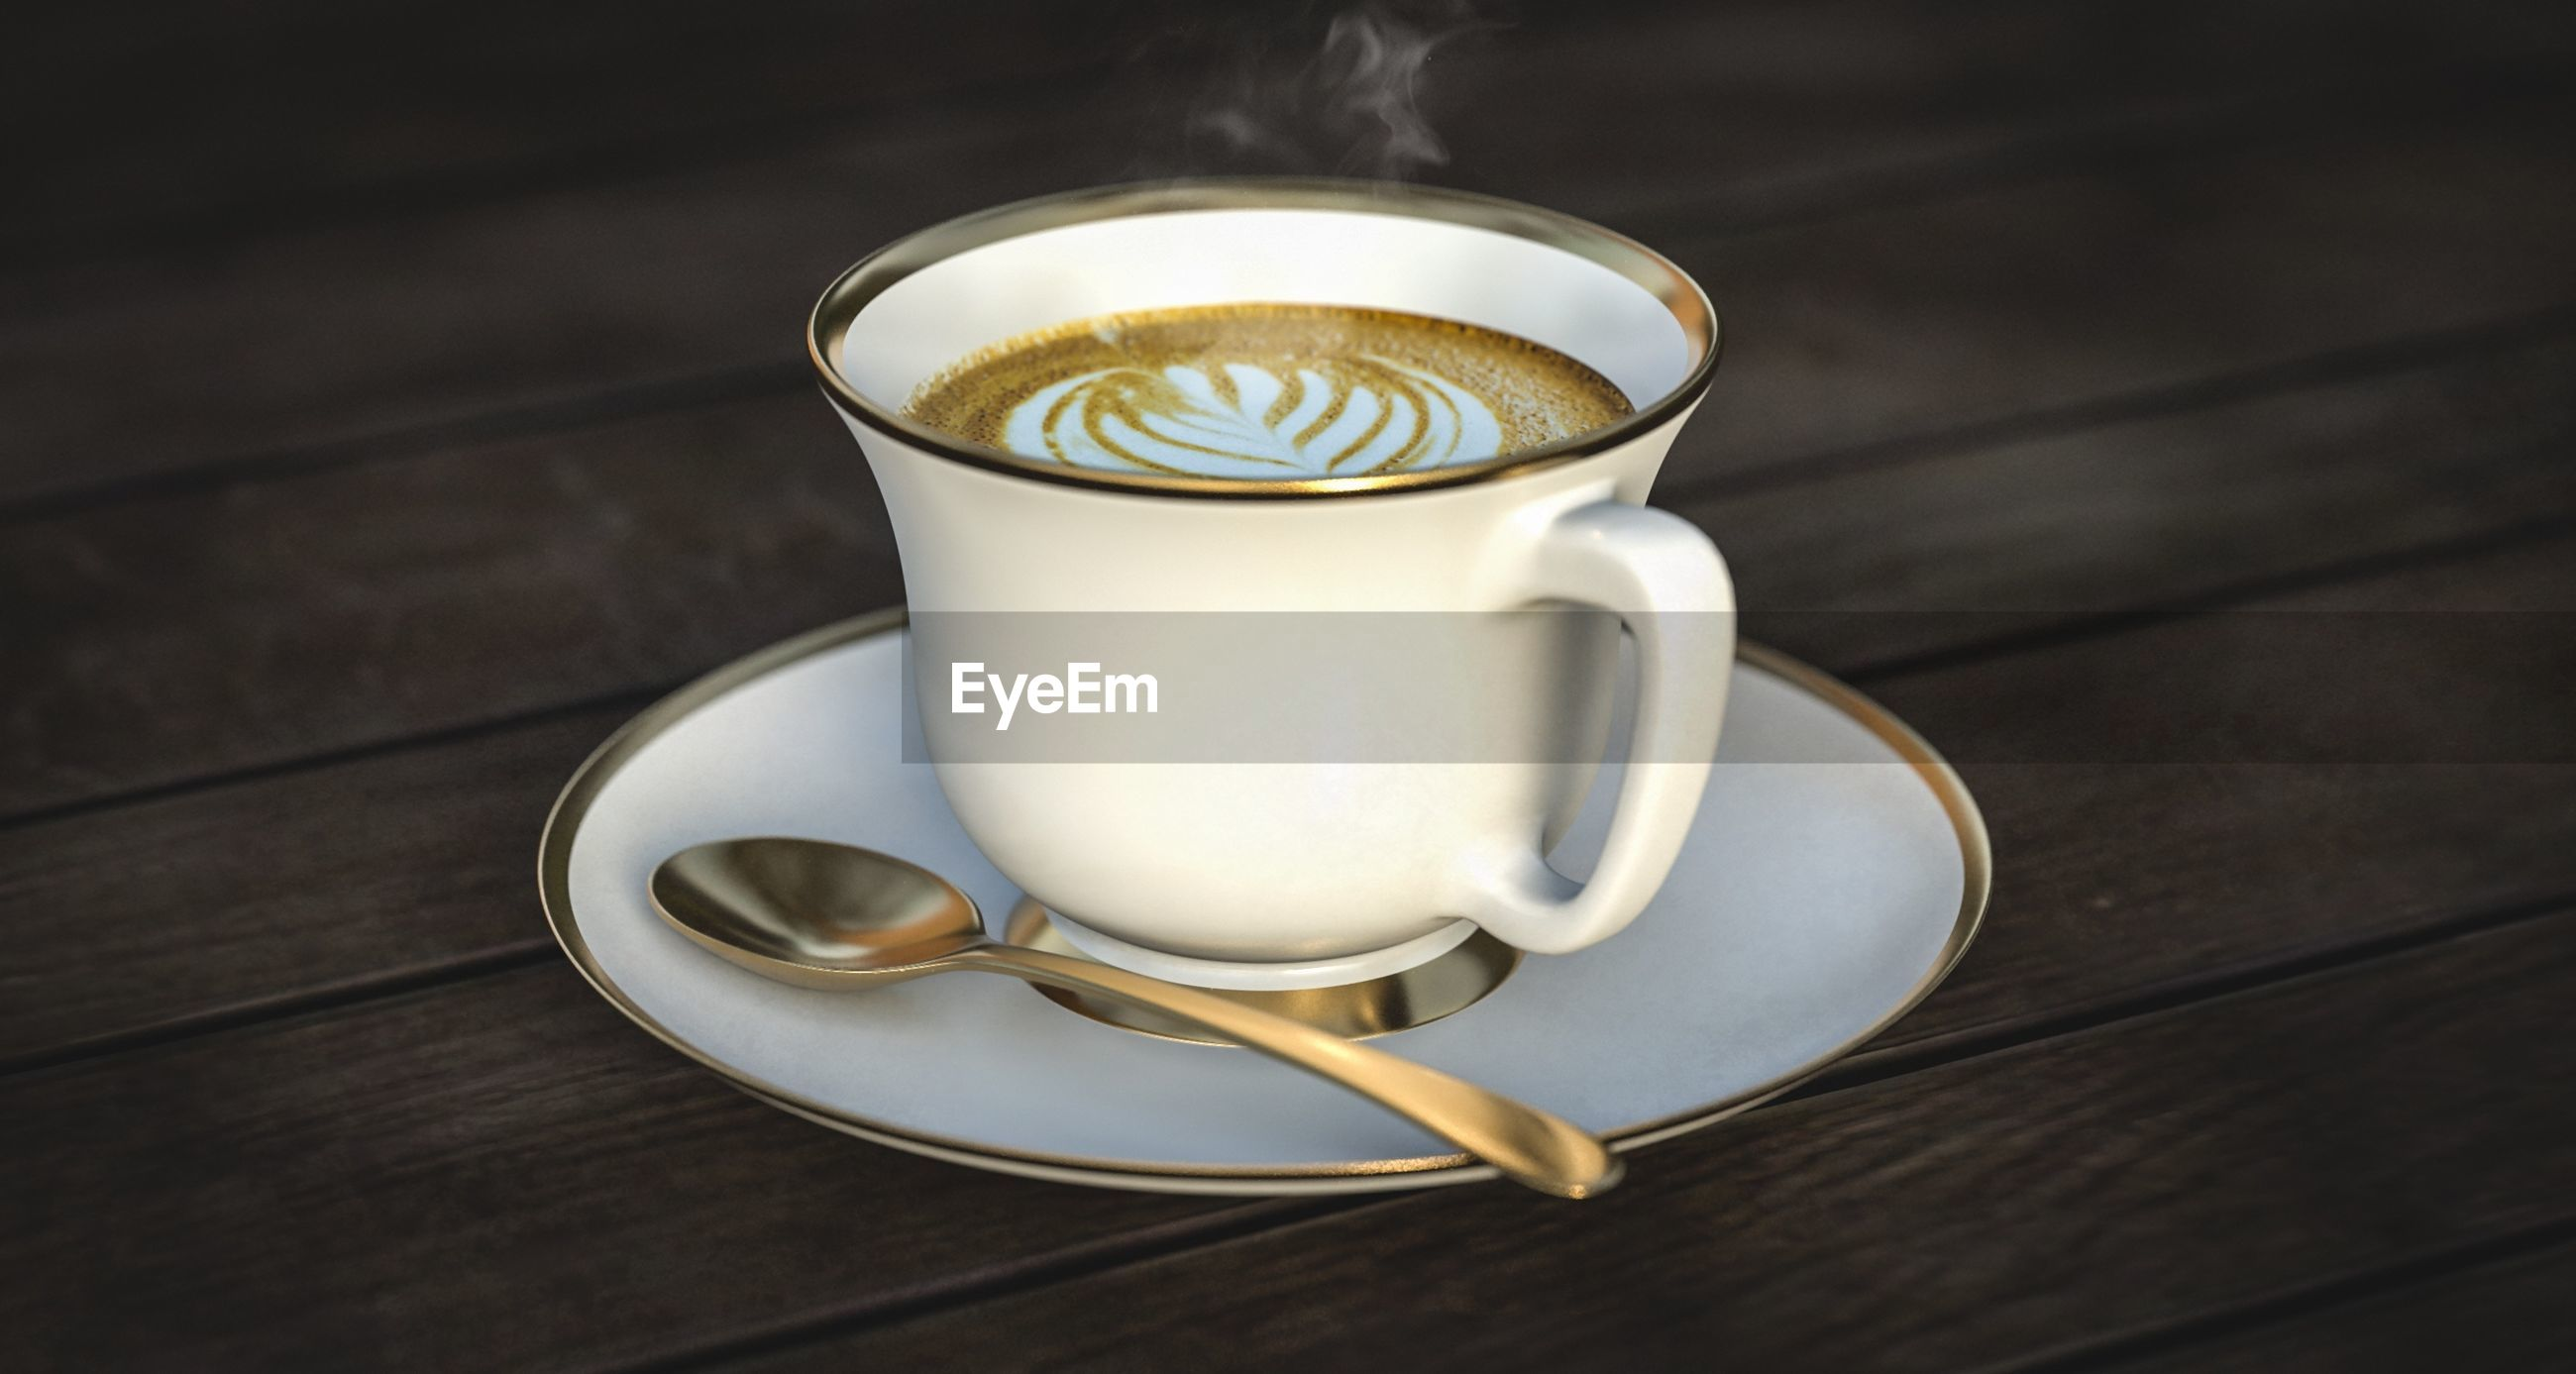 table, drink, refreshment, food and drink, coffee cup, indoors, no people, saucer, coffee - drink, focus on foreground, wood - material, frothy drink, freshness, close-up, day, froth art